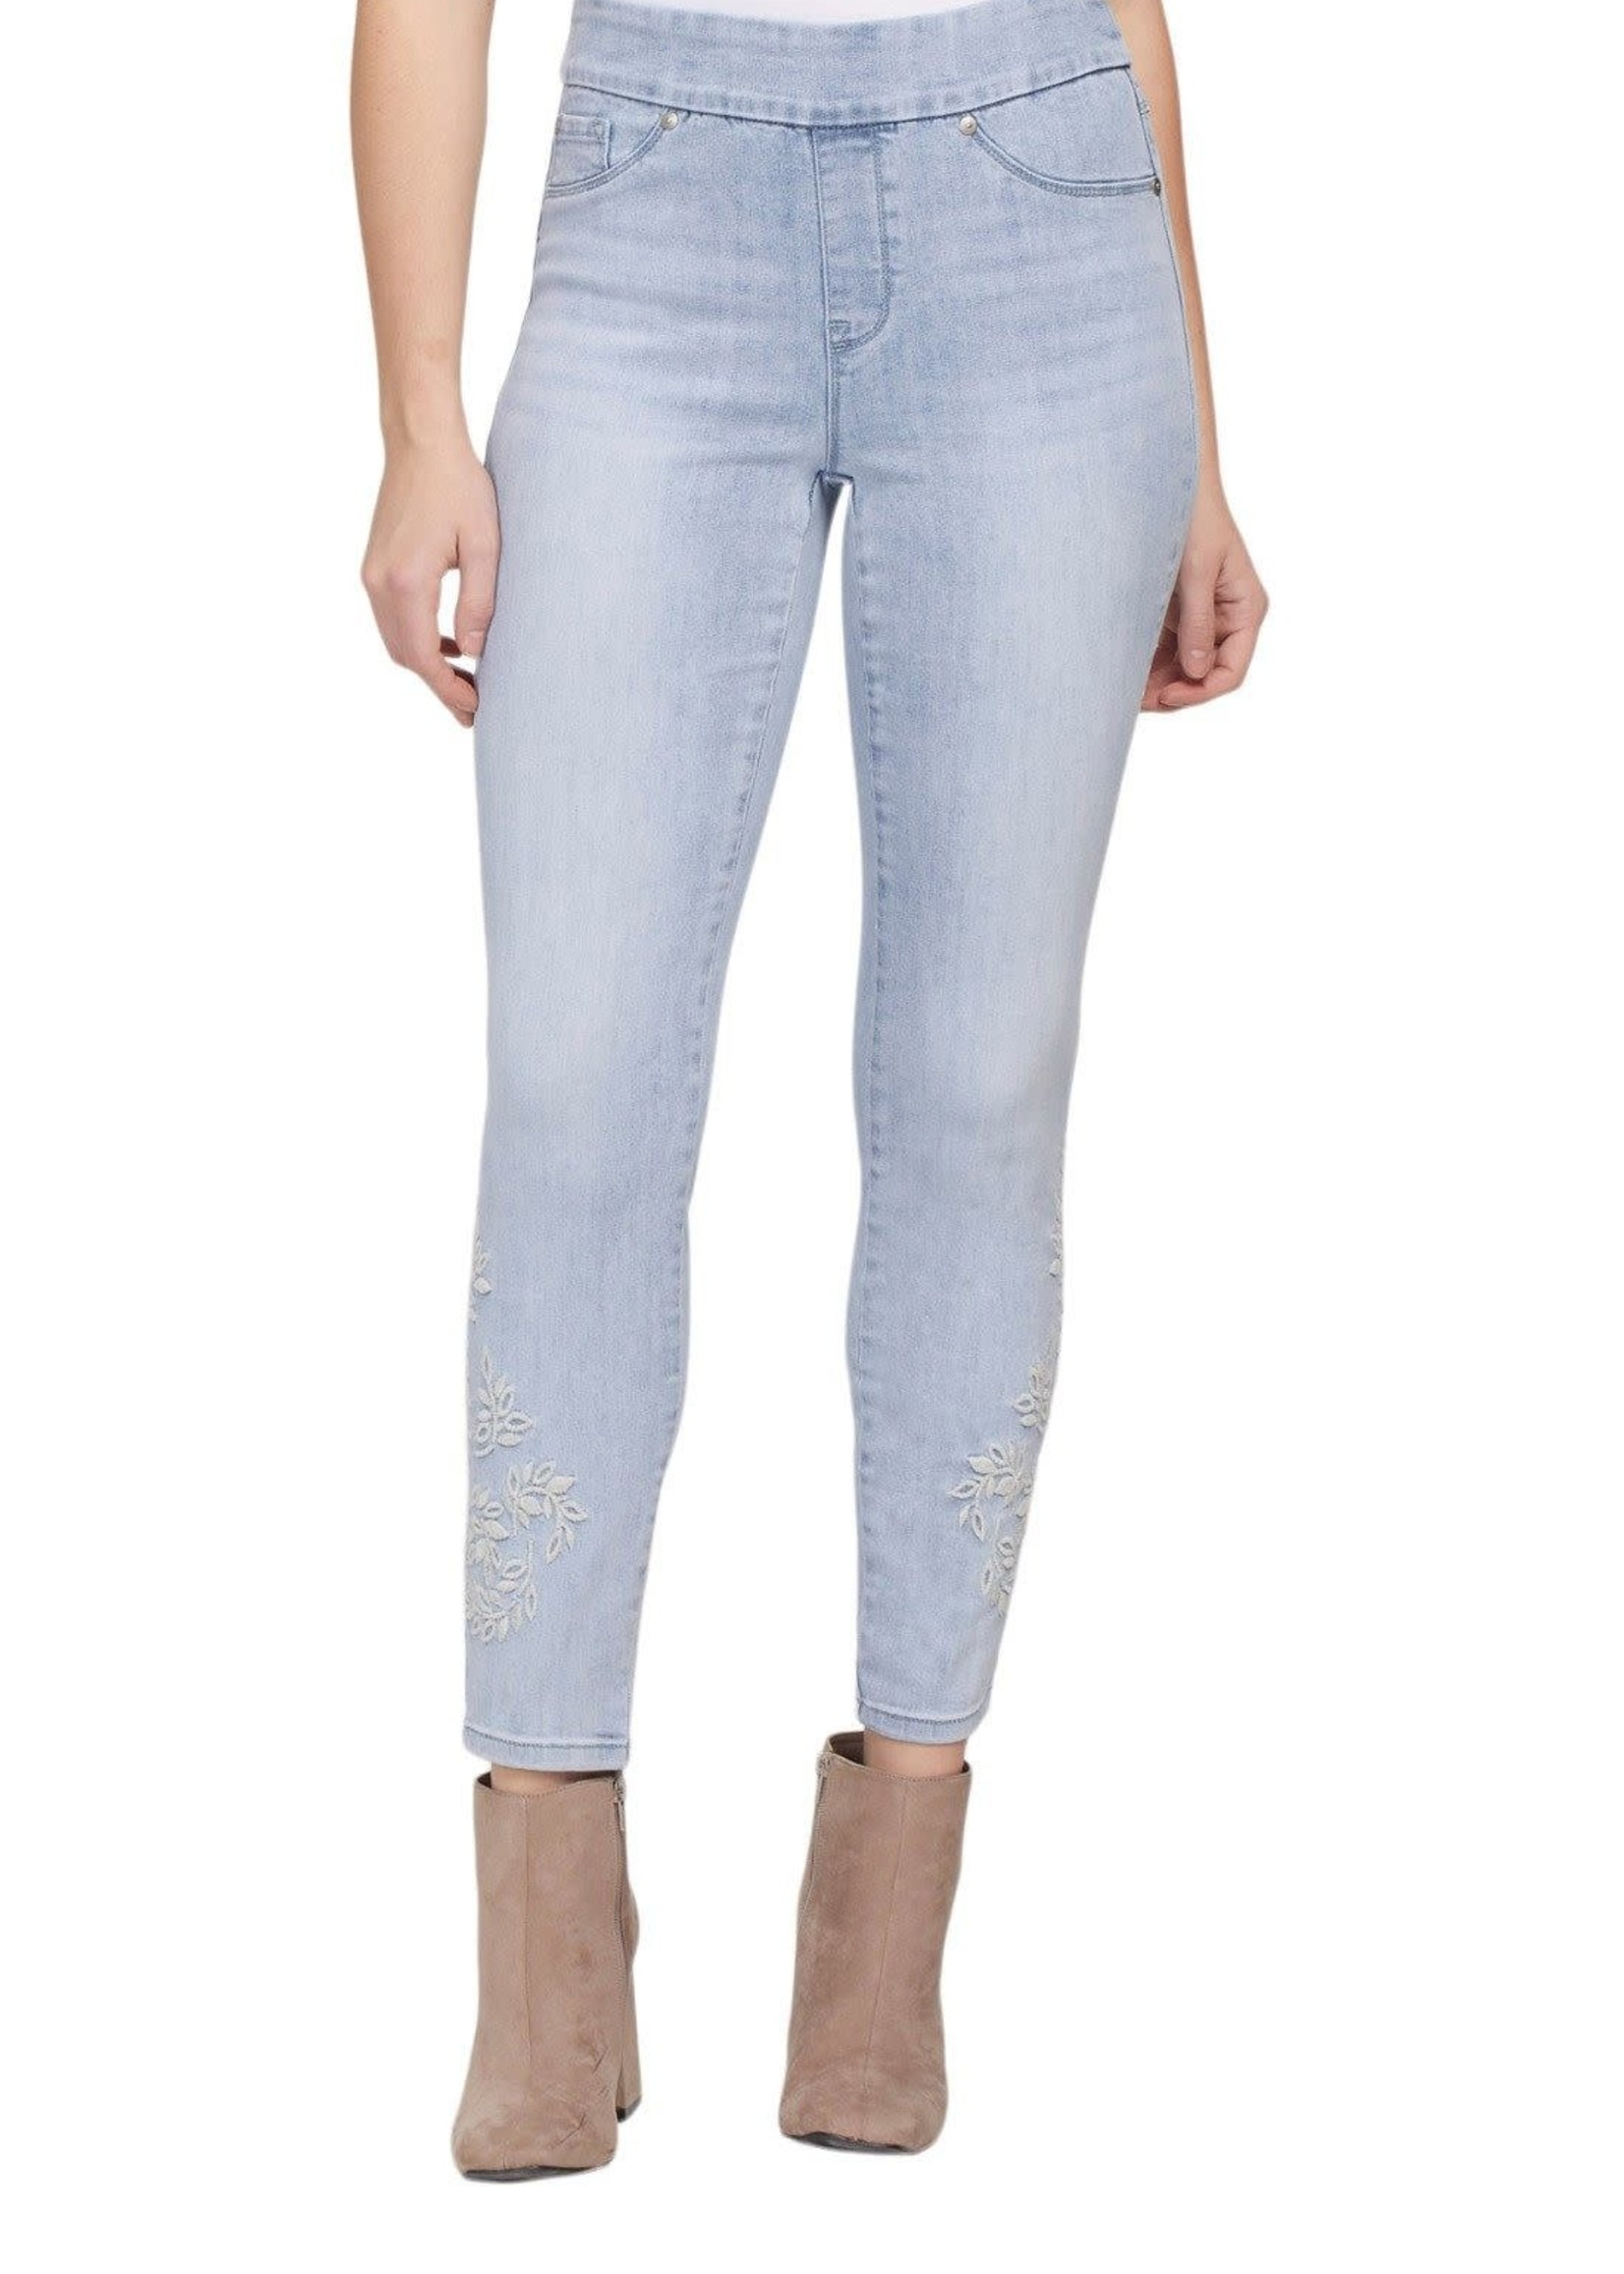 Tribal Tribal Audrey Pull On Jegging w/Embroidery